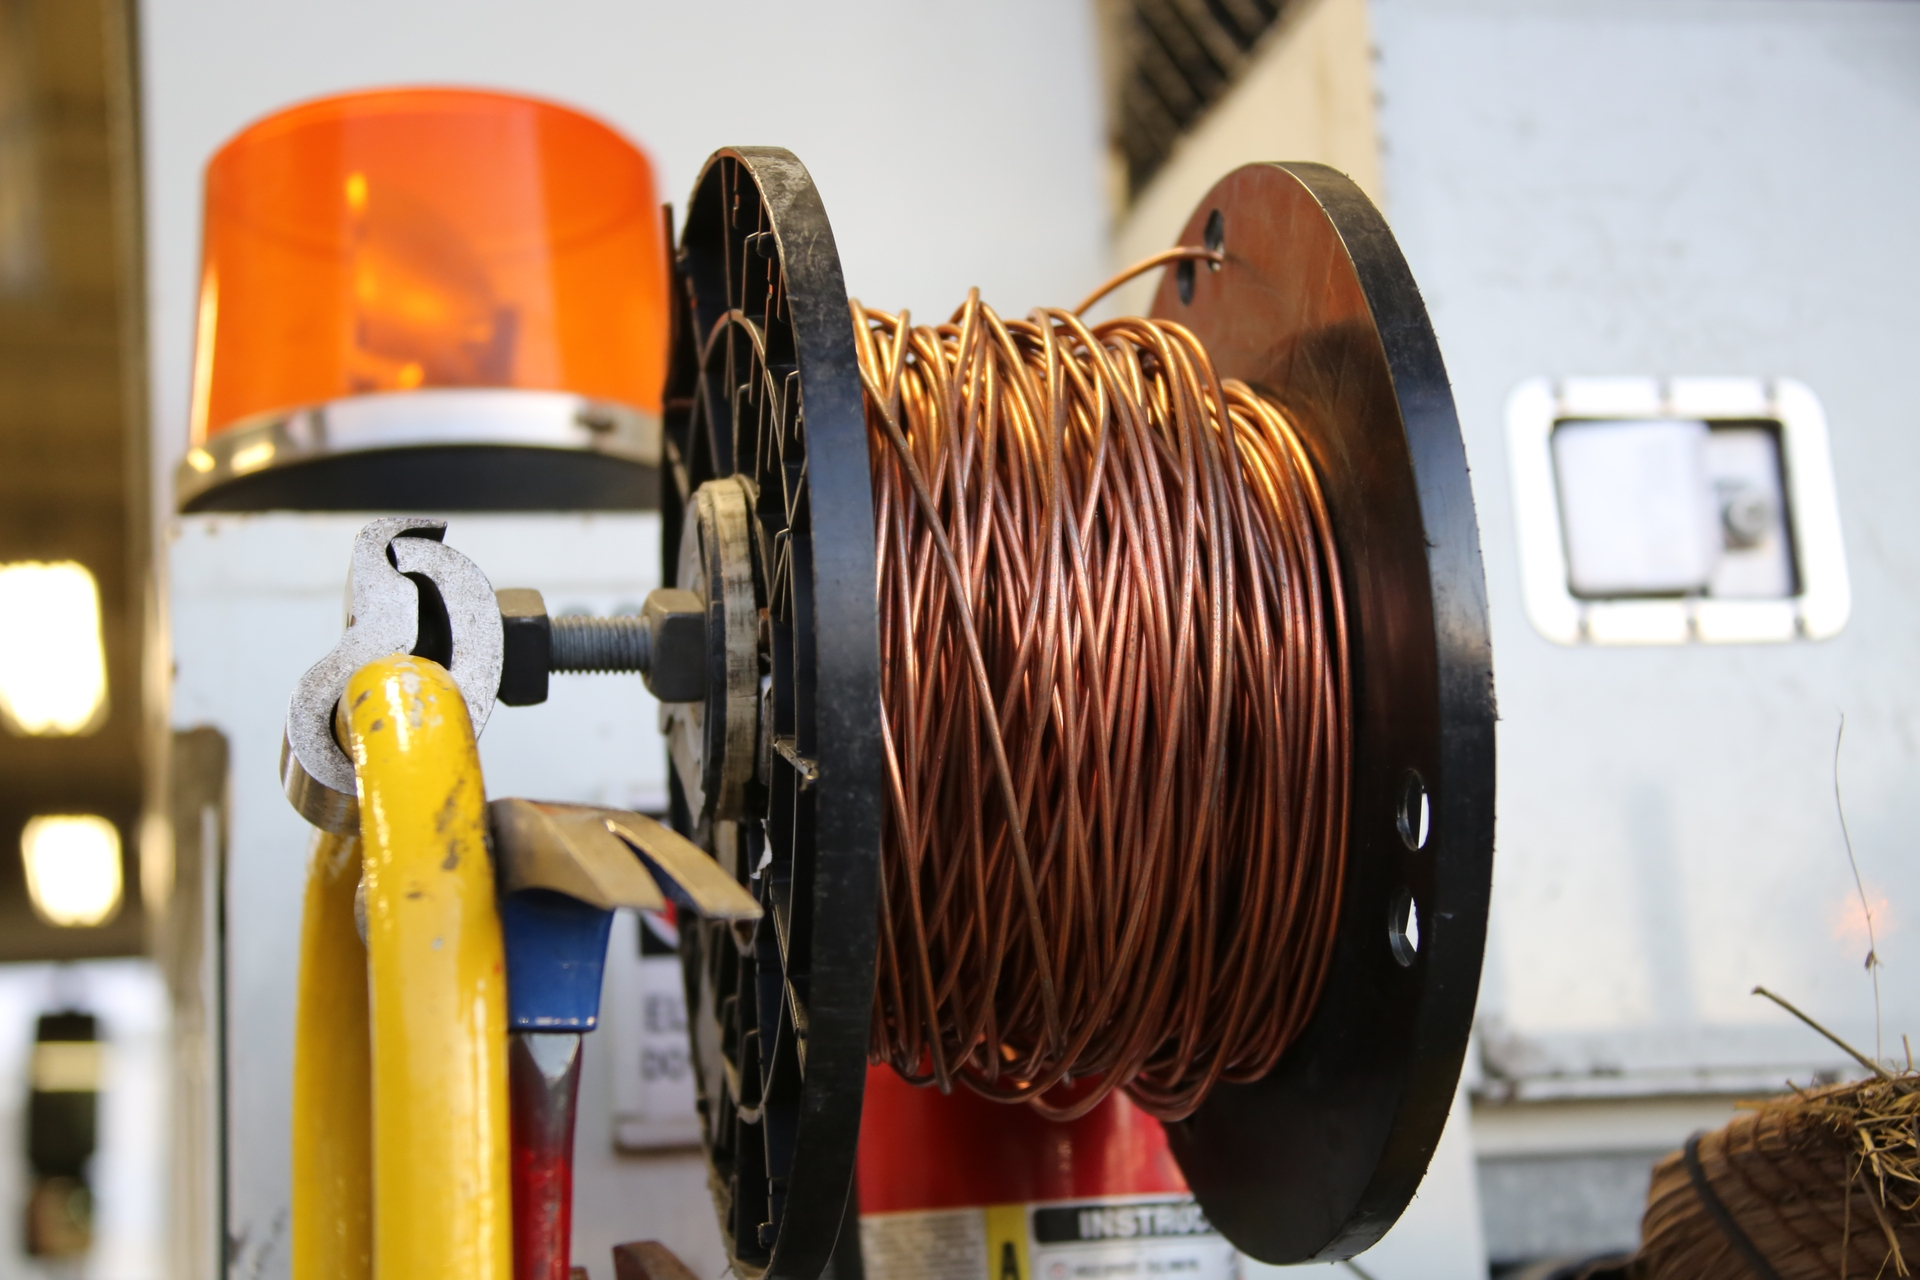 In addition to public safety threats like stray voltage, copper theft can cause power outages that range from a few minutes to hours.